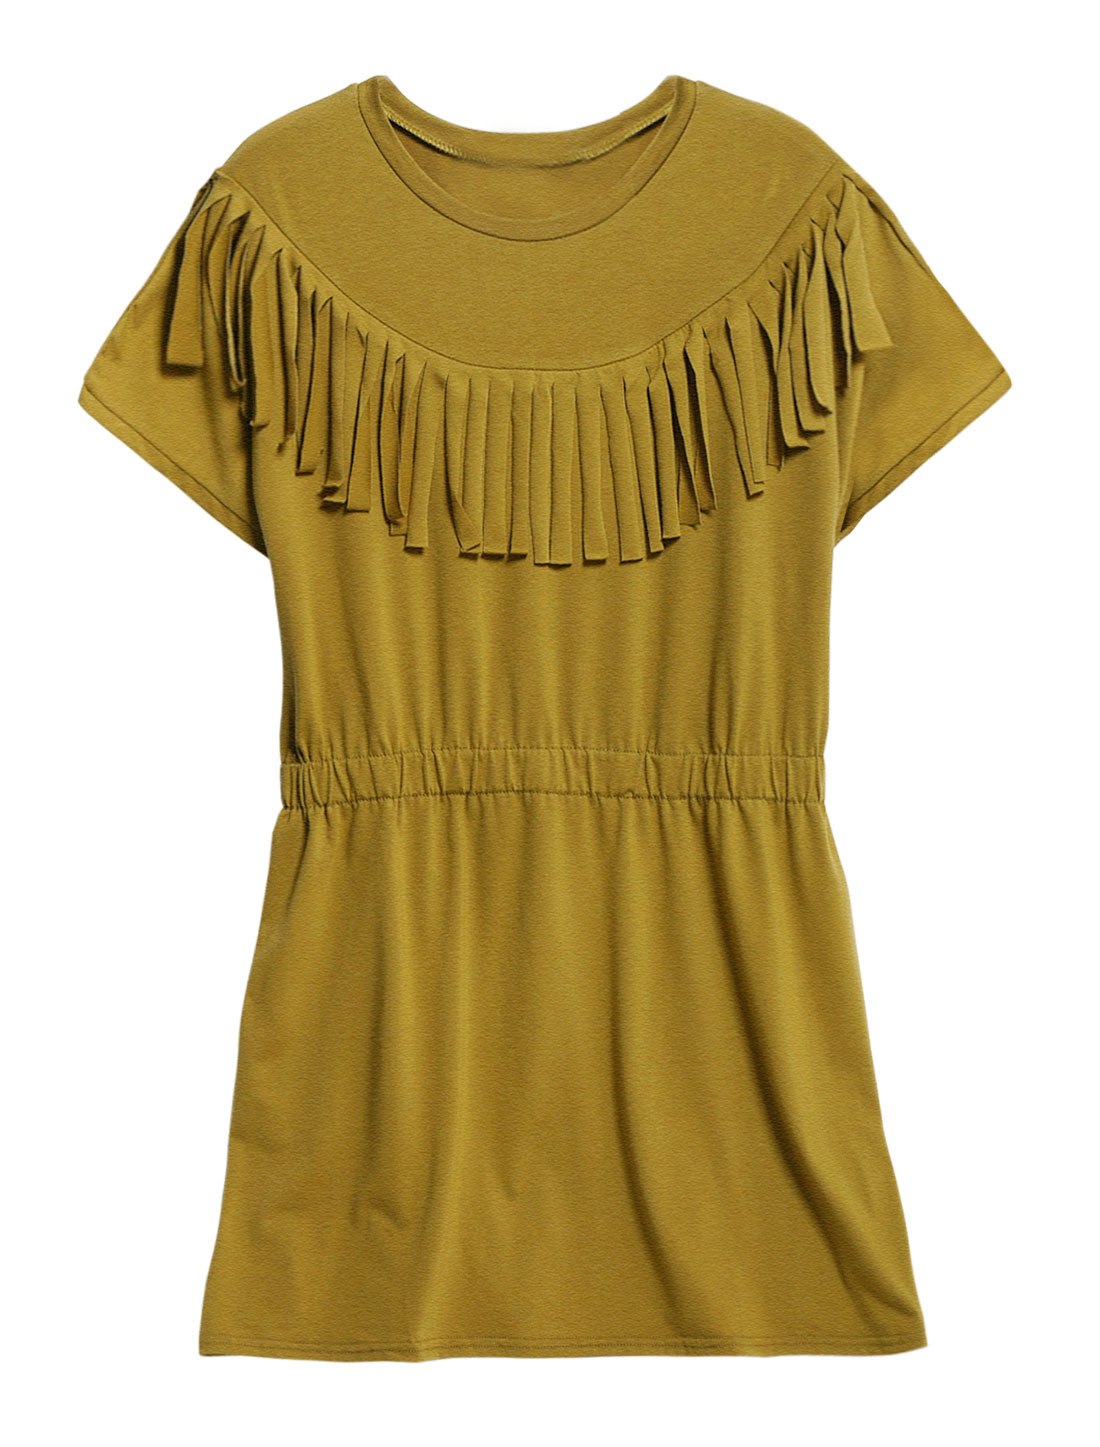 Woman Fringed Upper Round Neck A Line Dress Army Green L